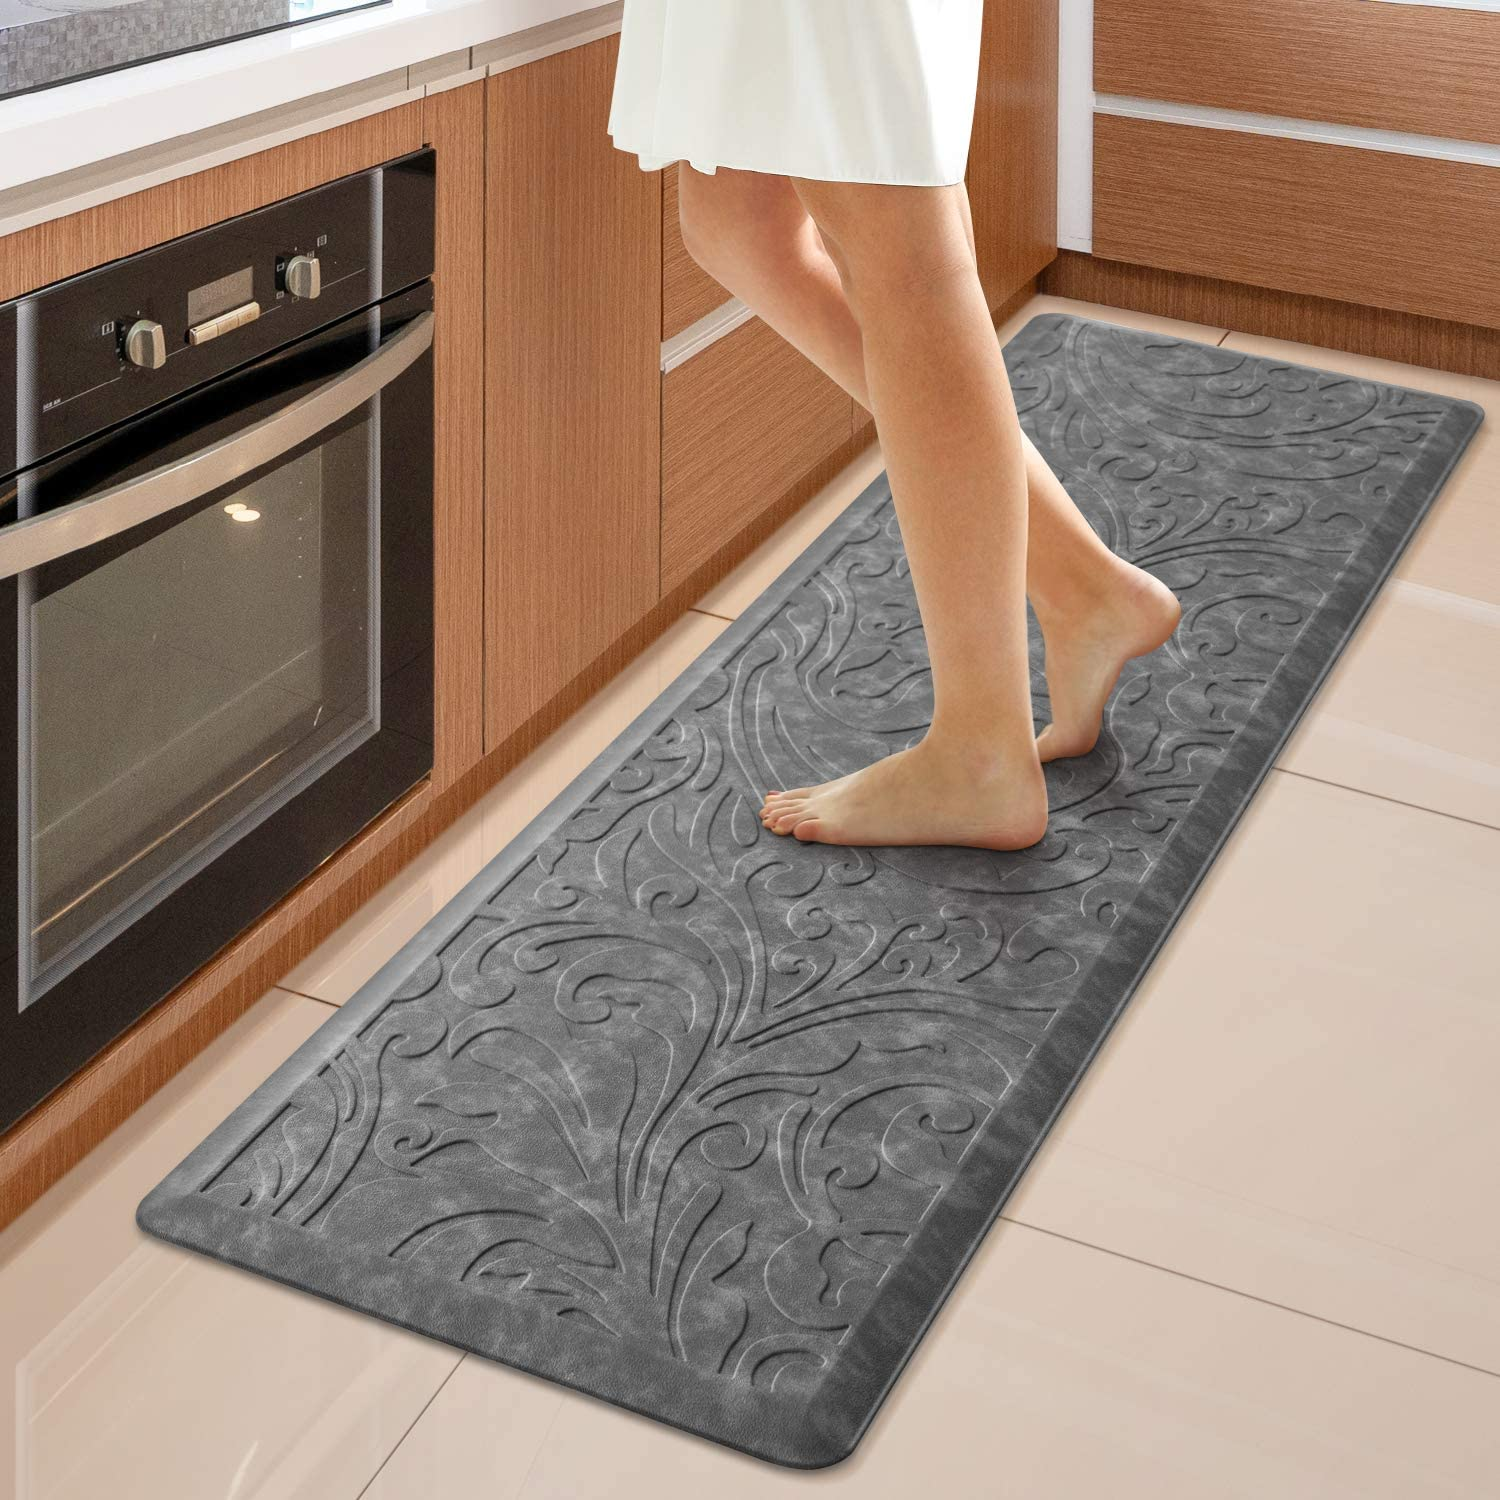 "KMAT Kitchen Mat Cushioned Anti-Fatigue Floor Mat Waterproof Non-Slip Standing Mat Ergonomic Comfort Floor Mat Rug for Home,Office,Sink,Laundry,Desk 17.3"" (W) x 60""(L), Grey"